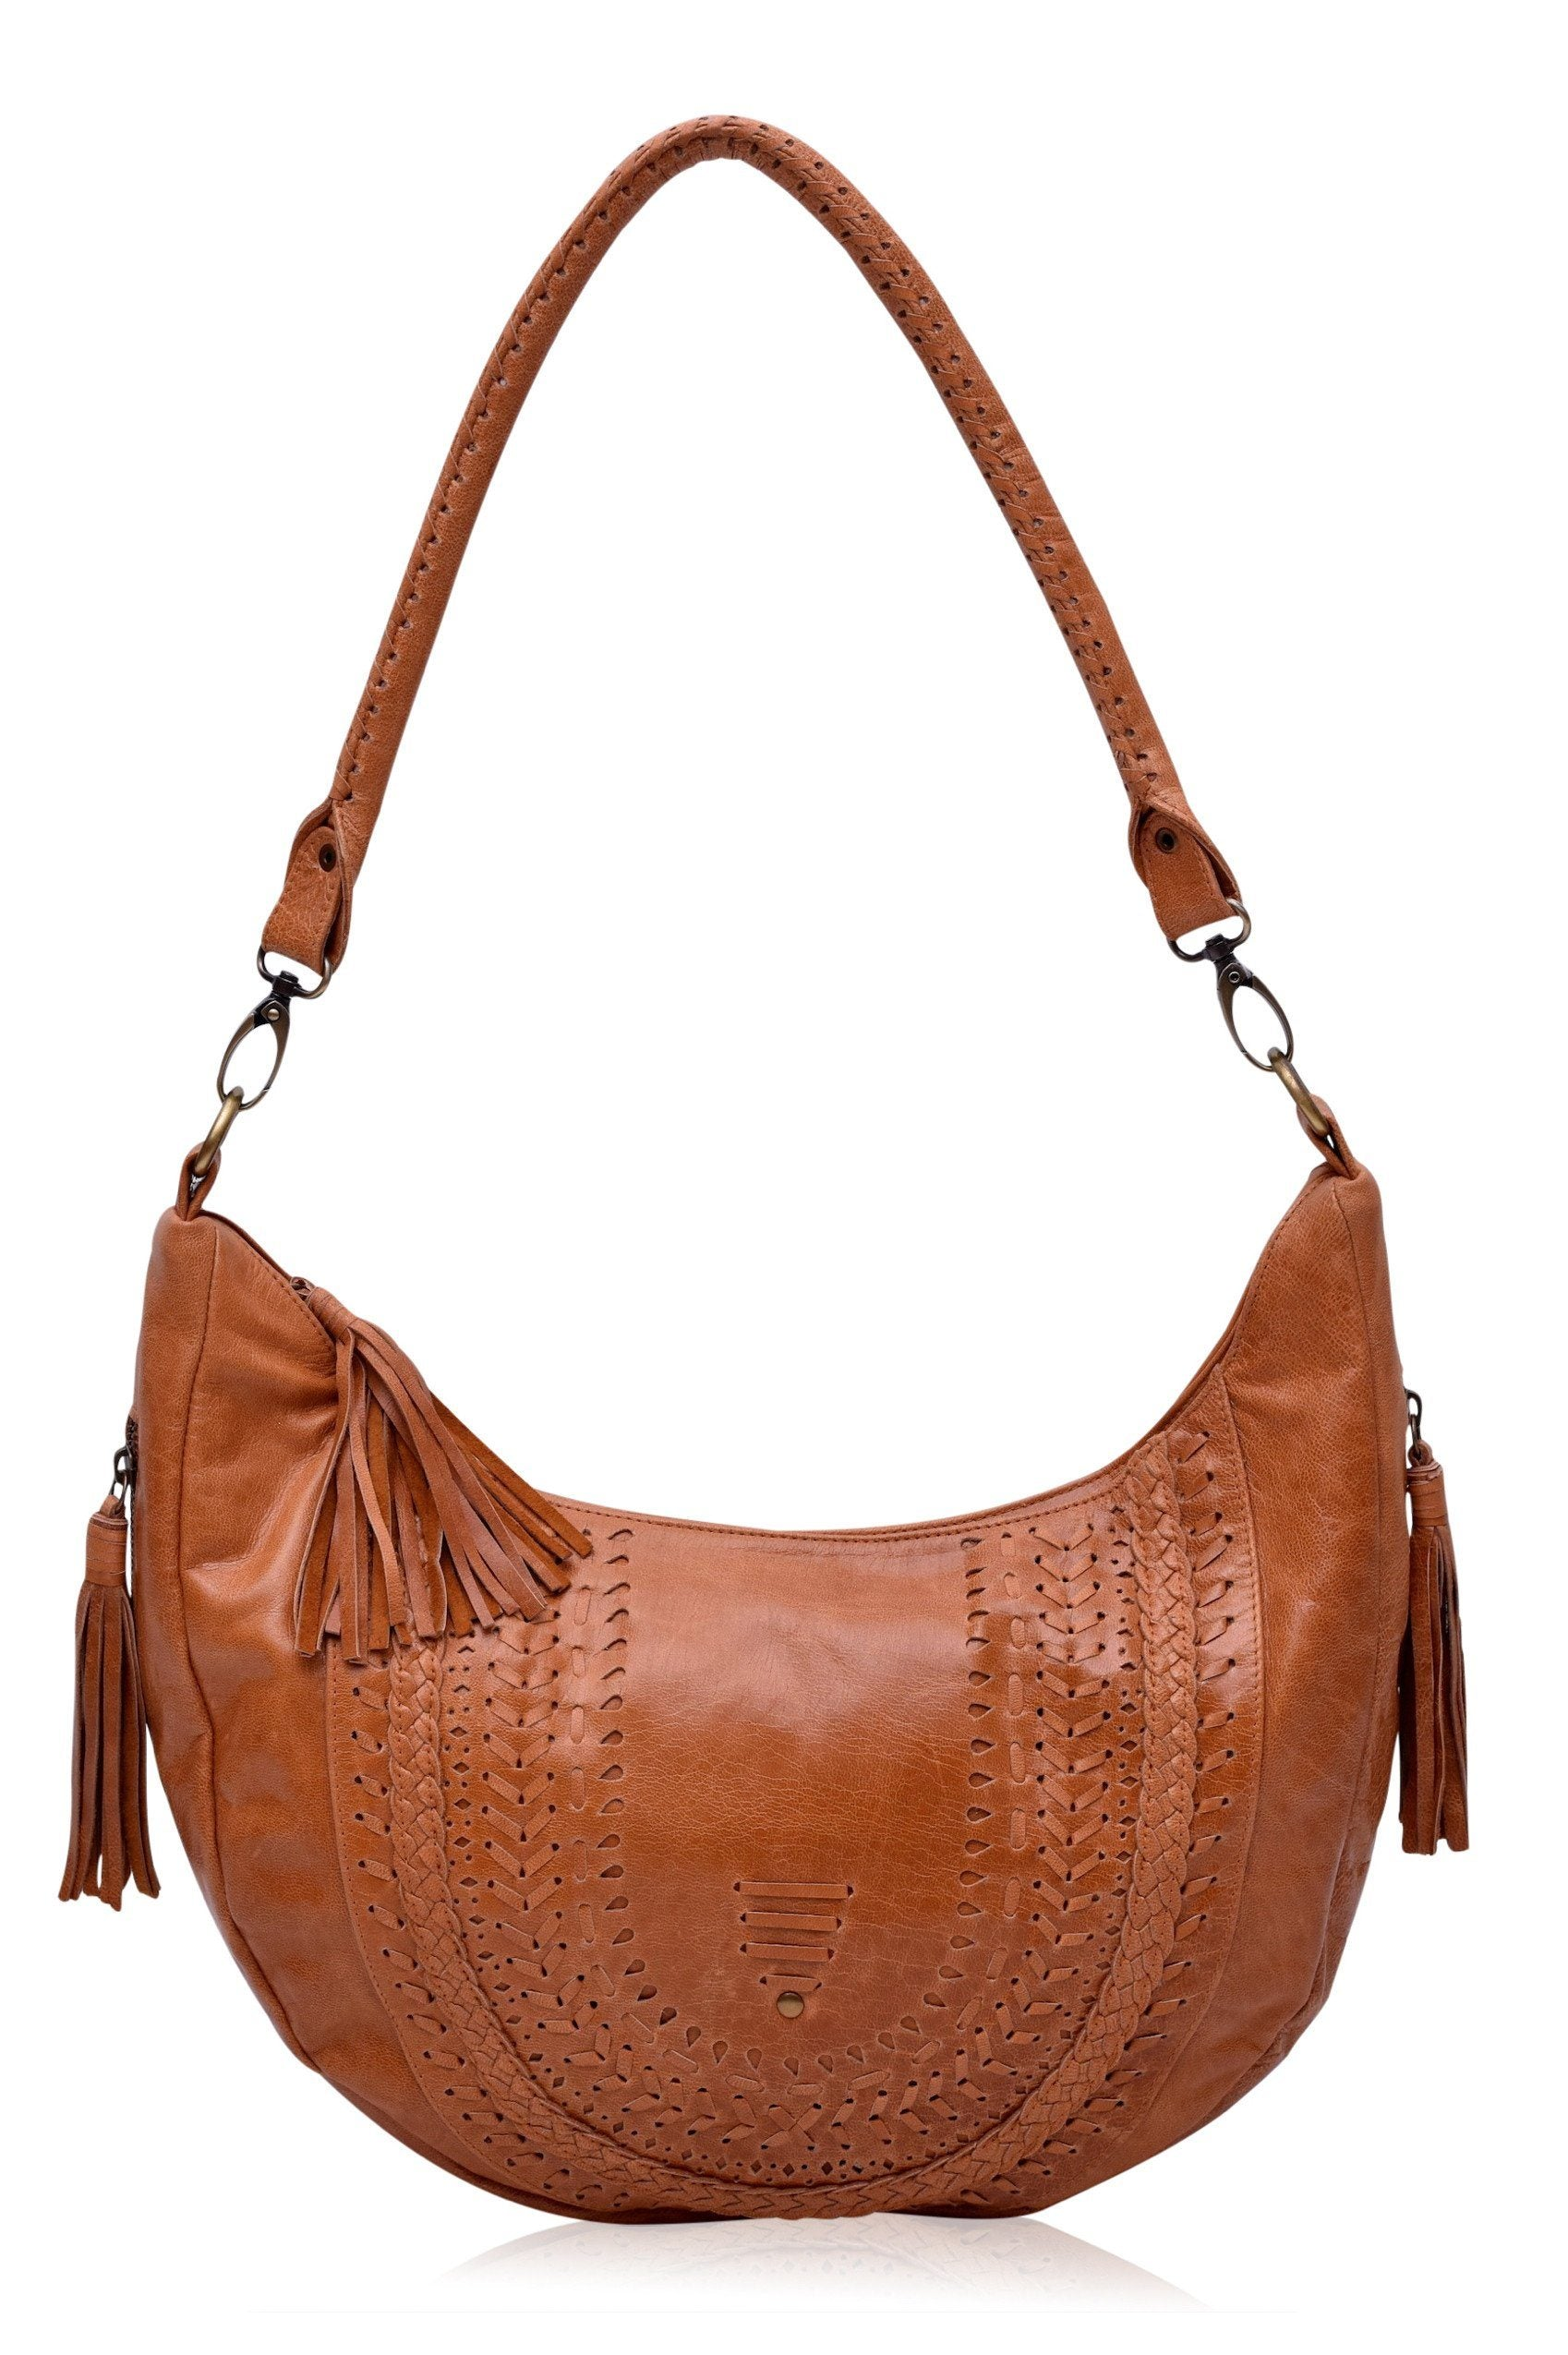 Elysian Coast. Handmade leather crossbody bag with leather detailing ... 1363a5e19